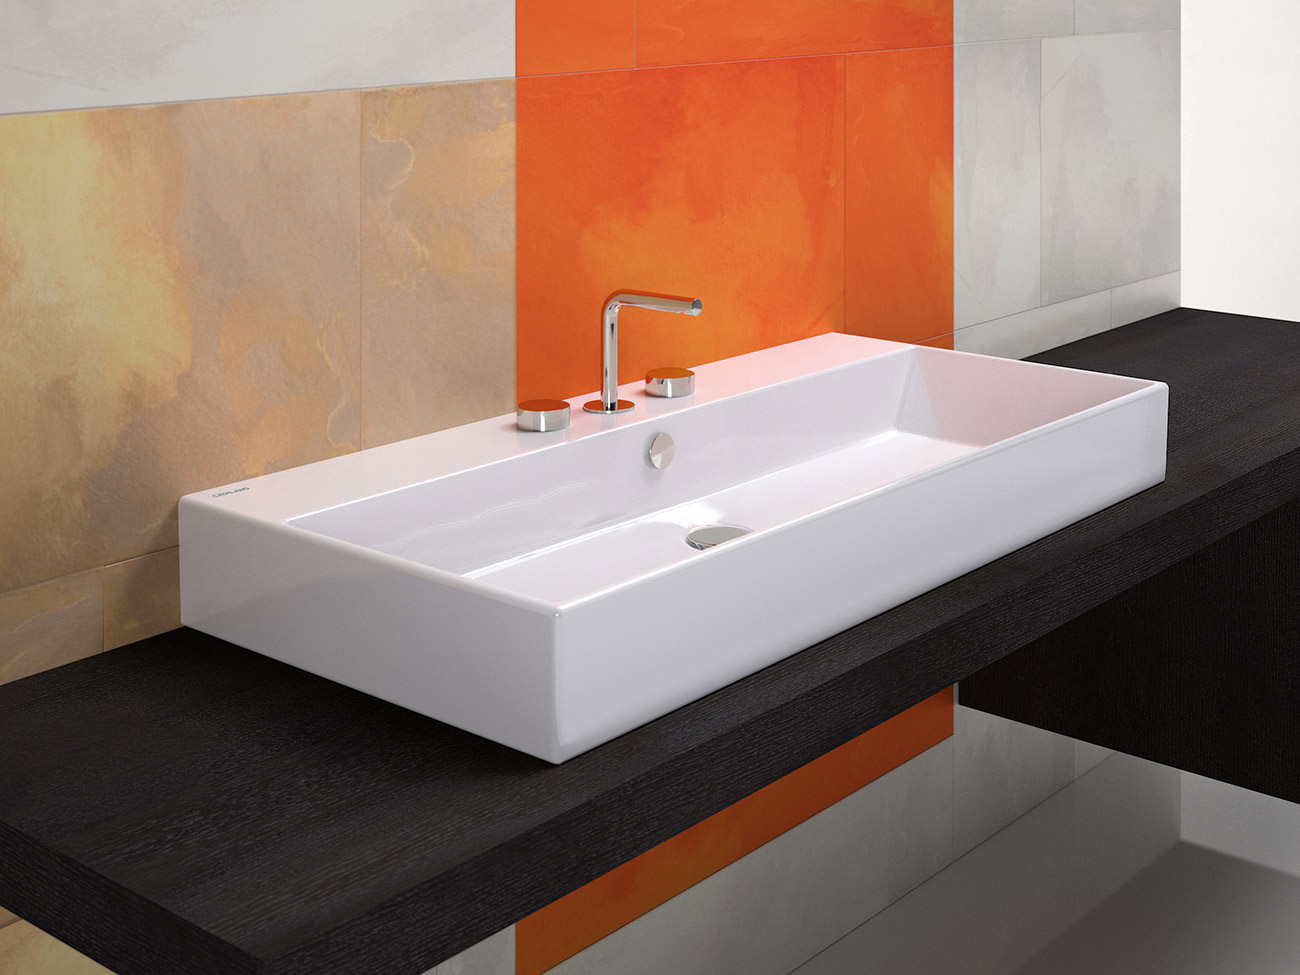 PREMIUM 100 Waschbecken by CERAMICA CATALANO Design cdc